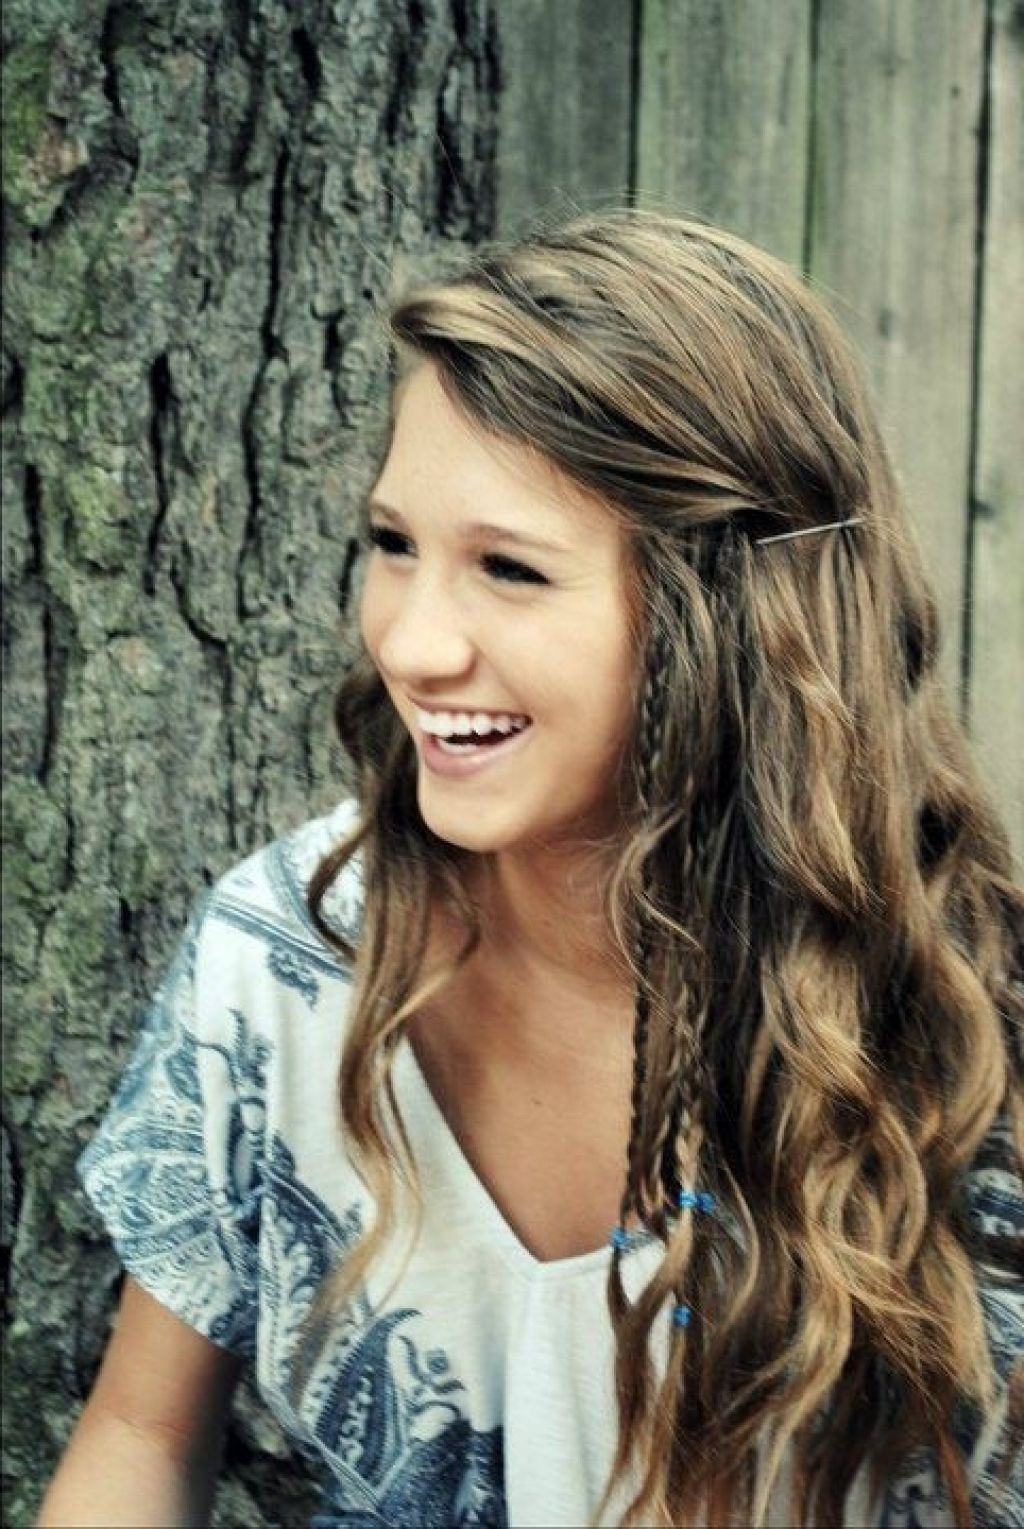 Best ideas about Hairstyles For Teens . Save or Pin Boho Hairstyles For Long Hair Elle Hairstyles Now.